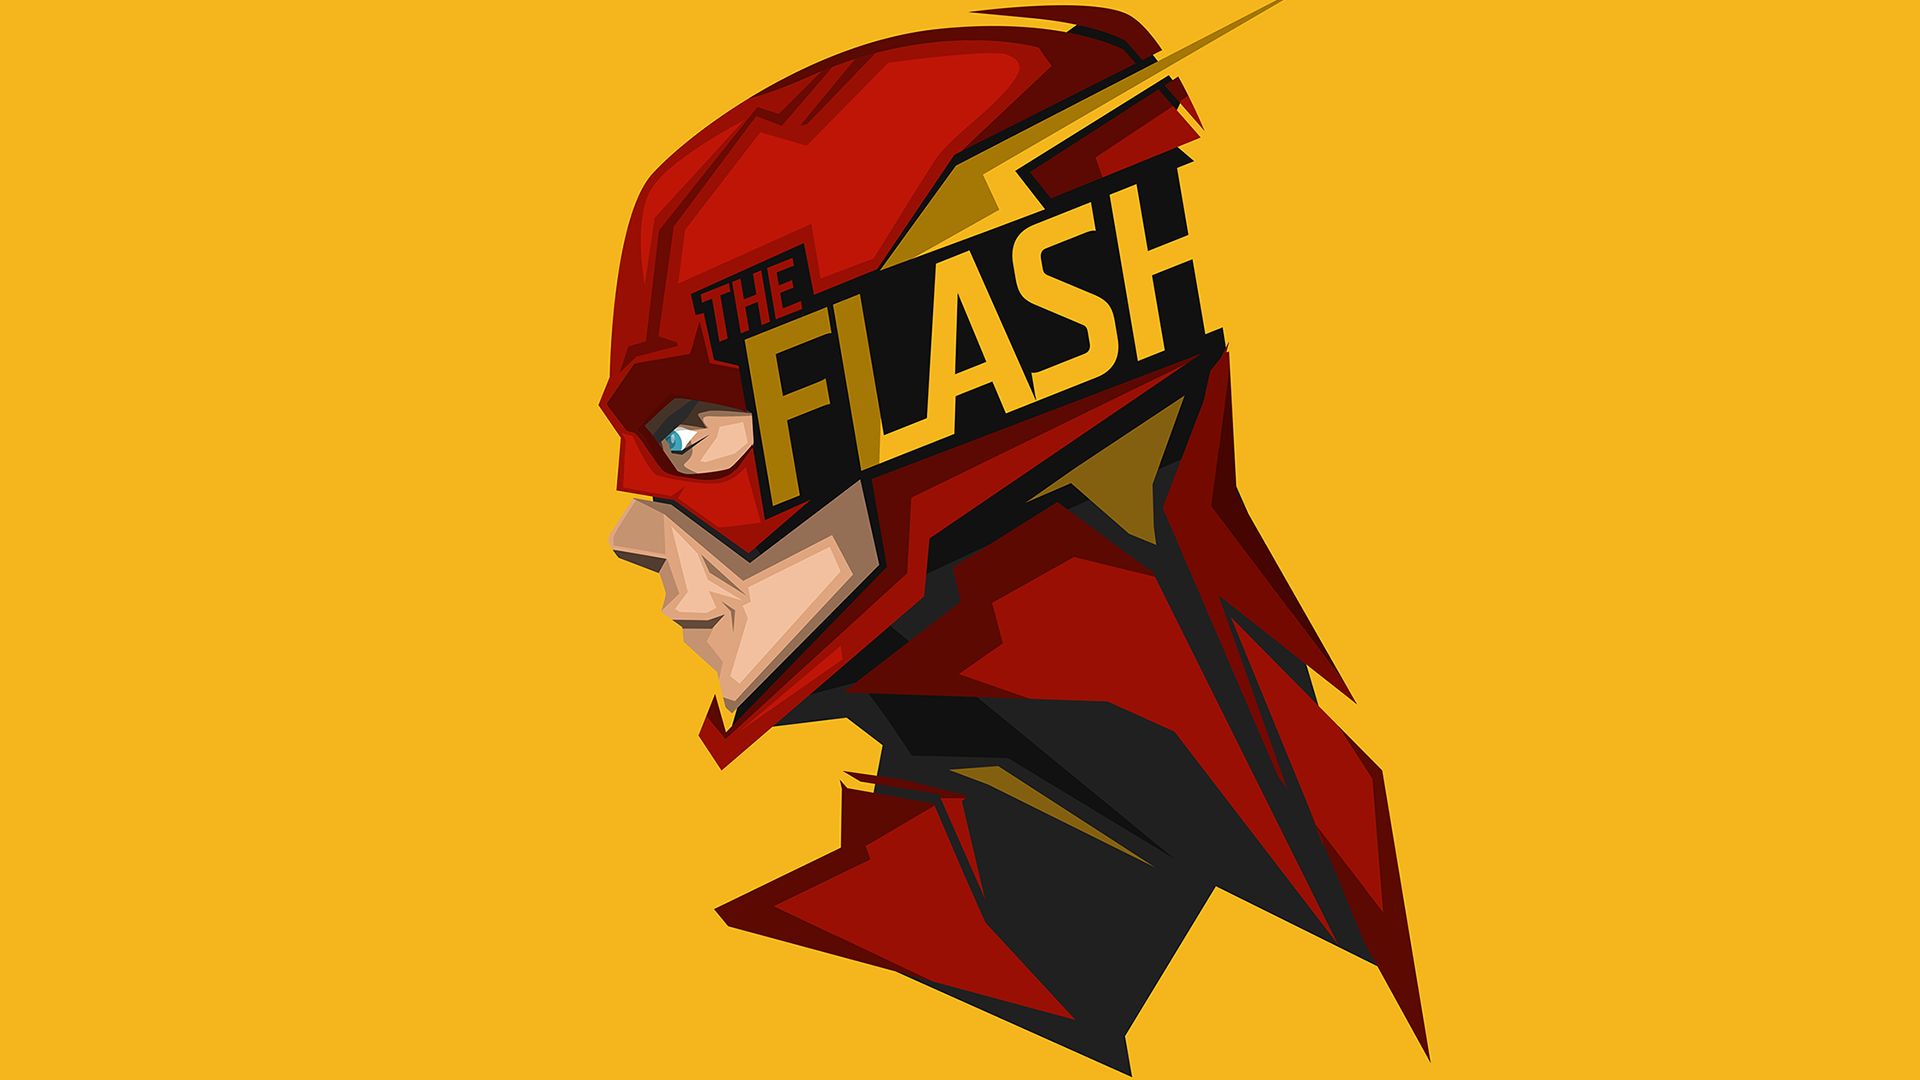 230 Flash HD Wallpapers Background Images 1920x1080